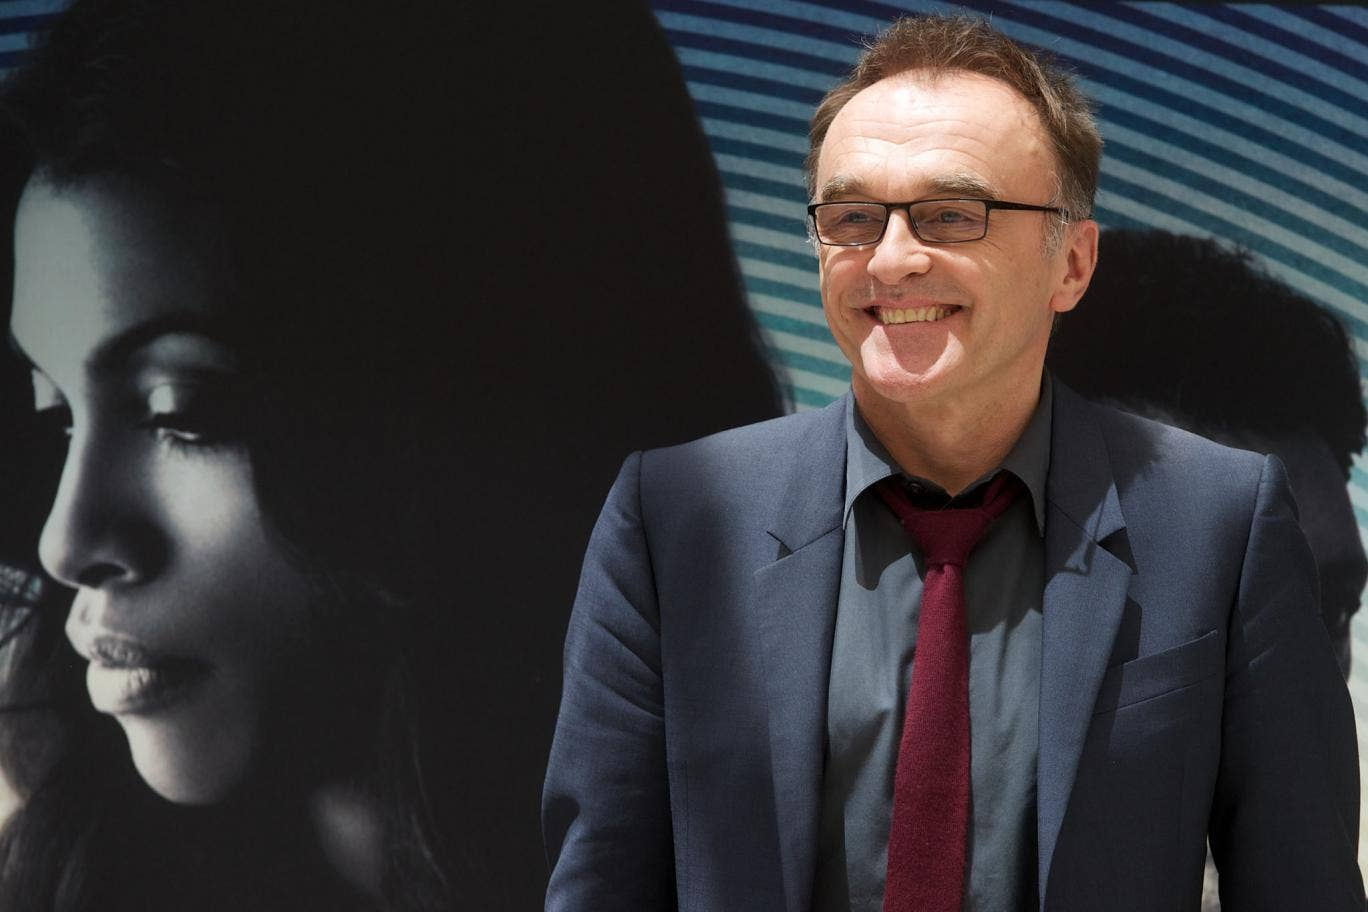 Oscar-winning director Danny Boyle is to team up with Peep Show writers for a new Channel 4 drama